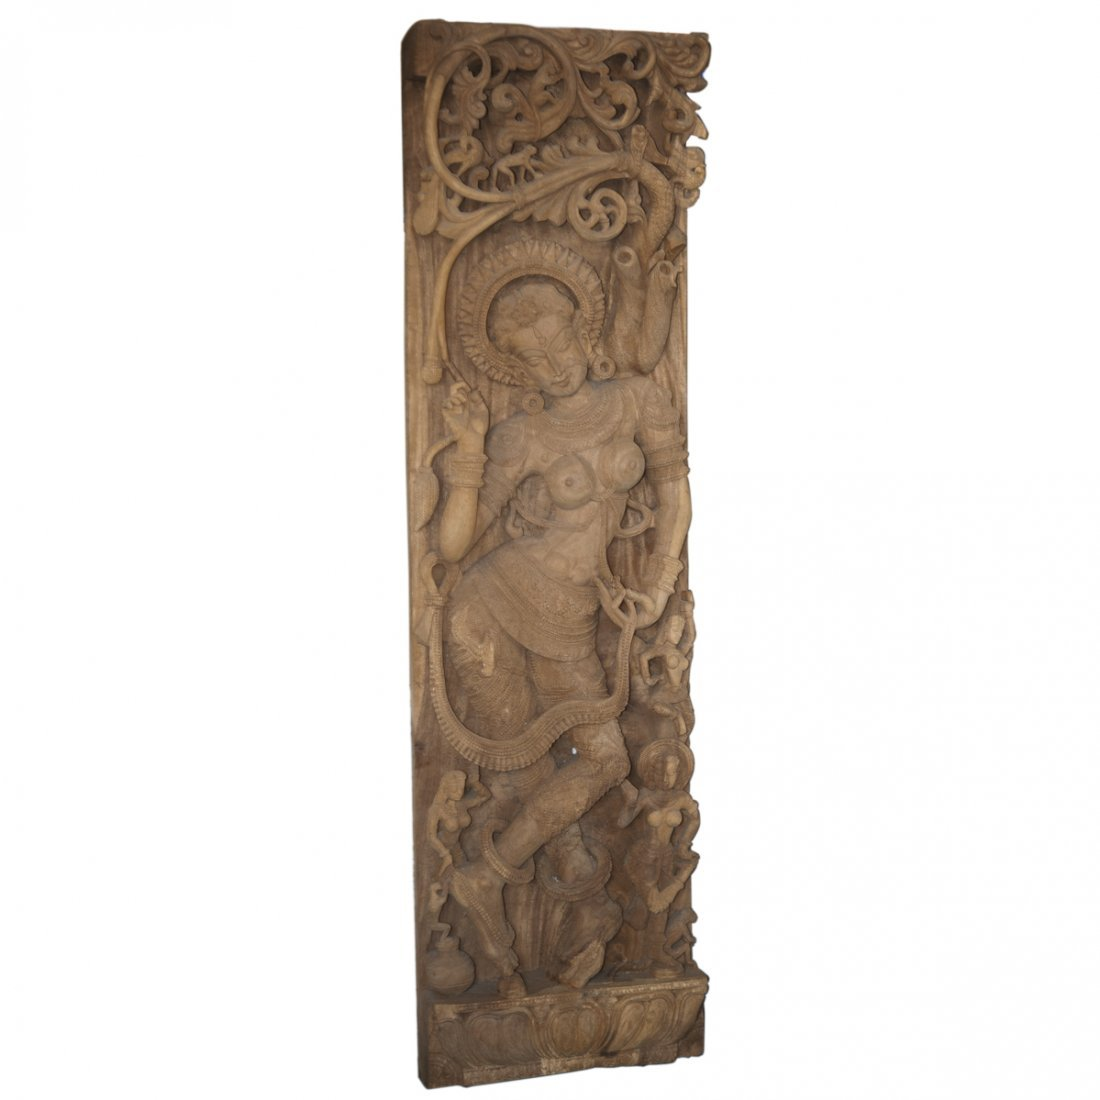 Large Indian Hindu Carved Wooden Plaque